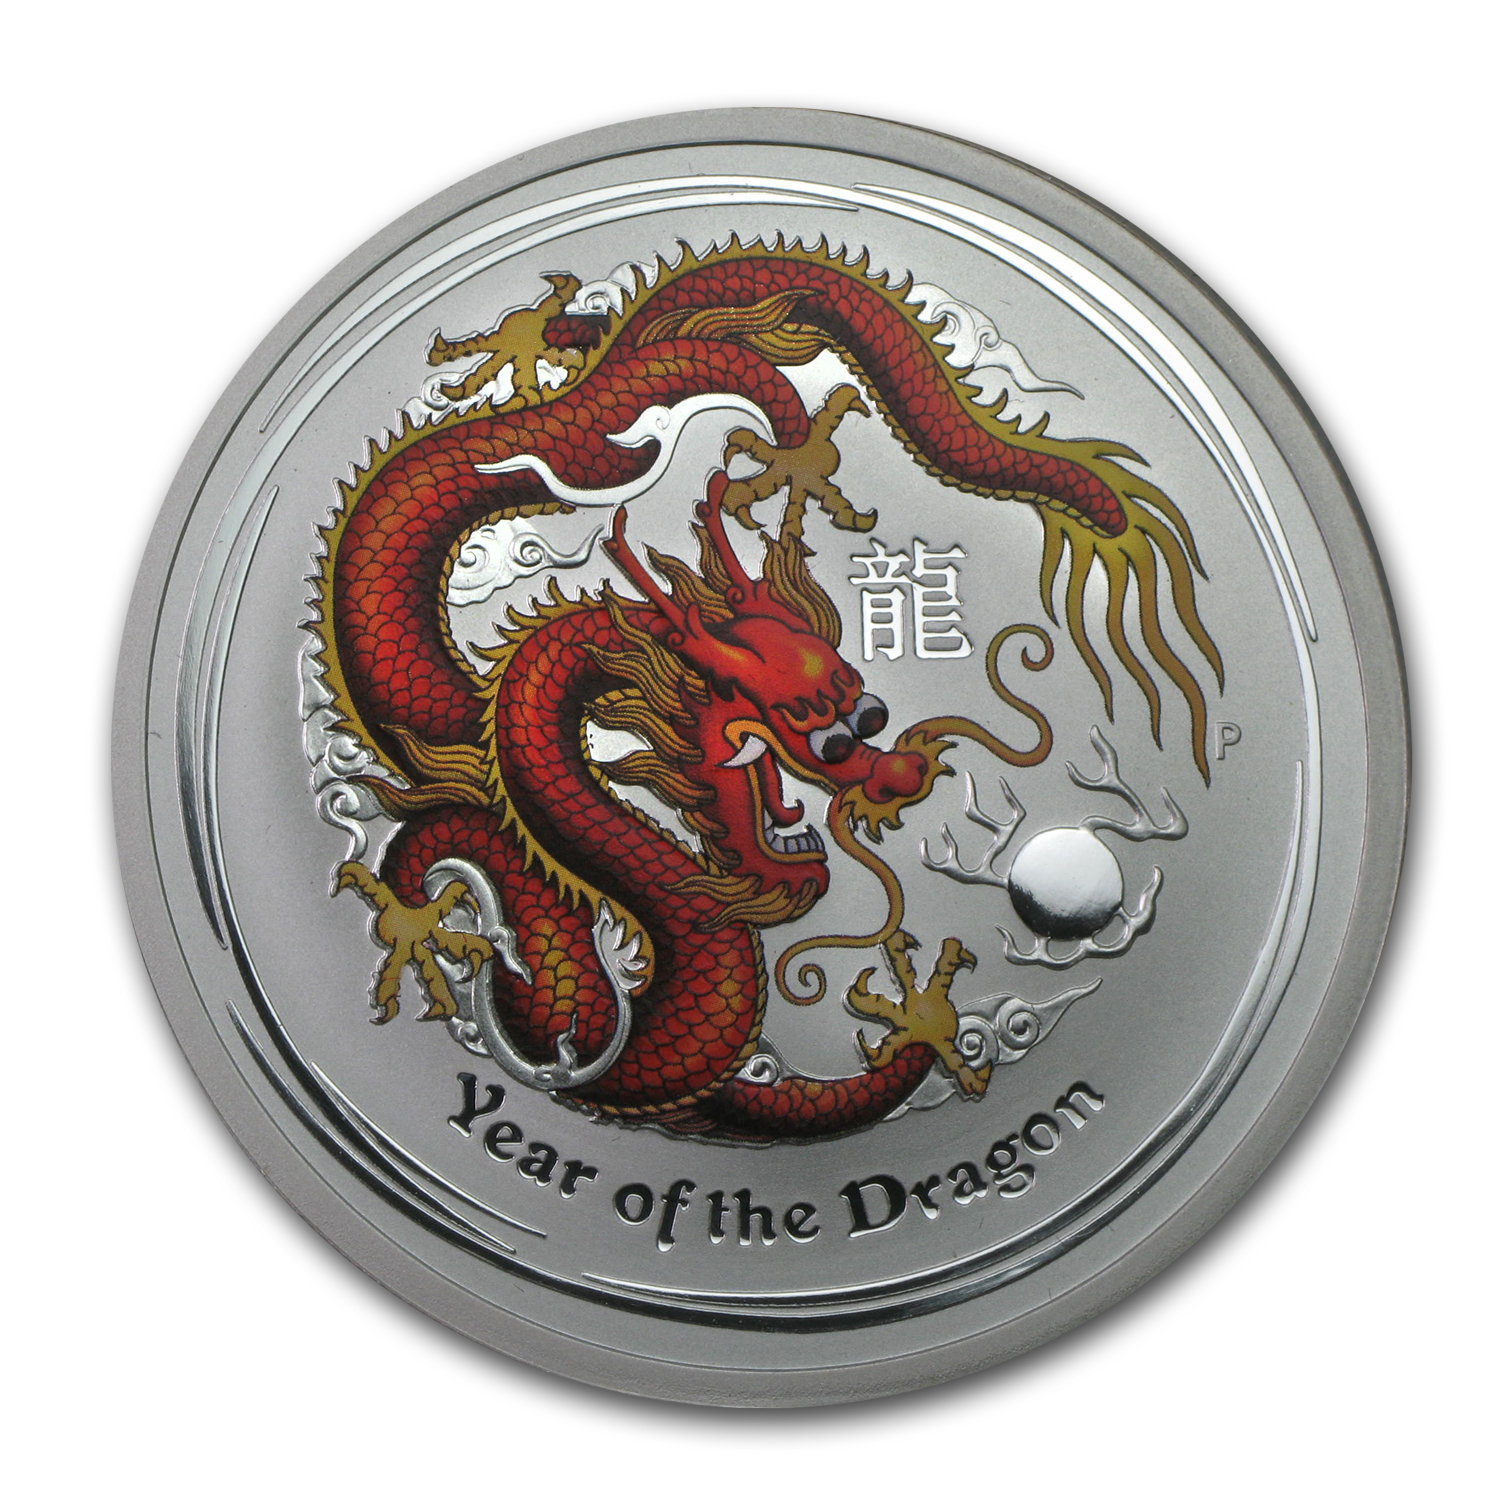 2012 2 oz Silver Australian Year of the Dragon (ANDA, Colorized)